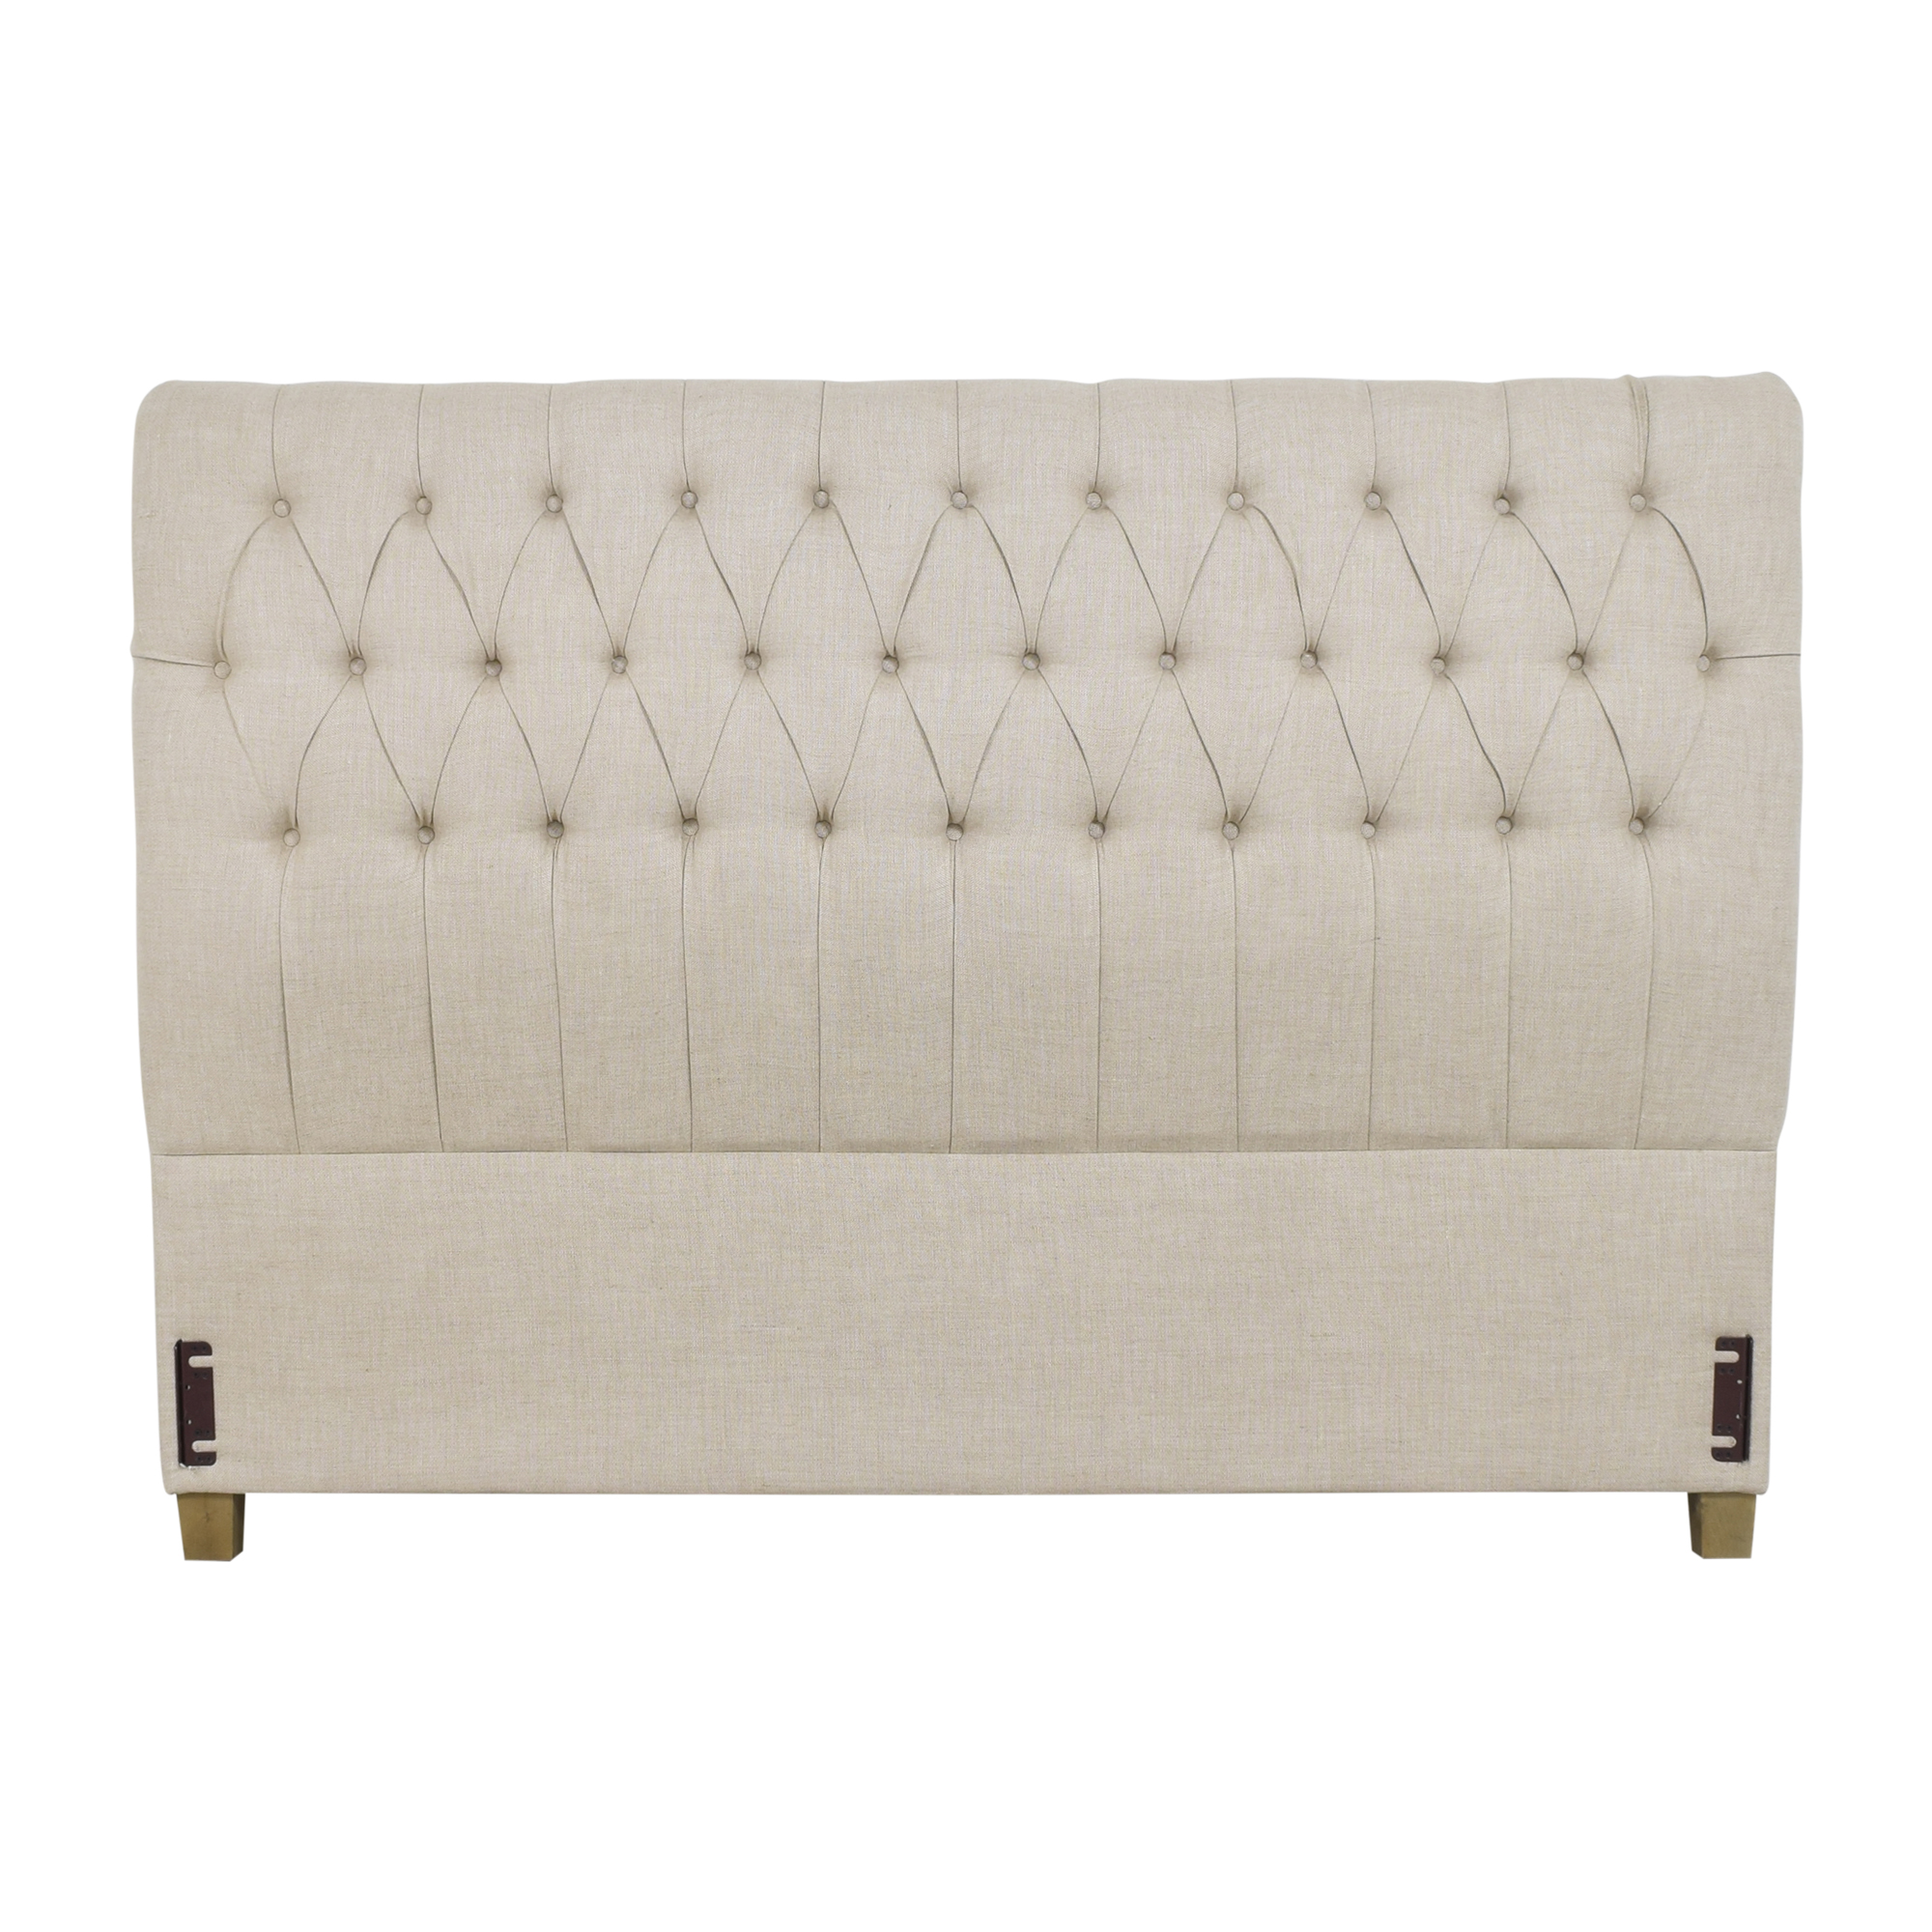 Restoration Hardware Restoration Hardware Tufted King Headboard on sale